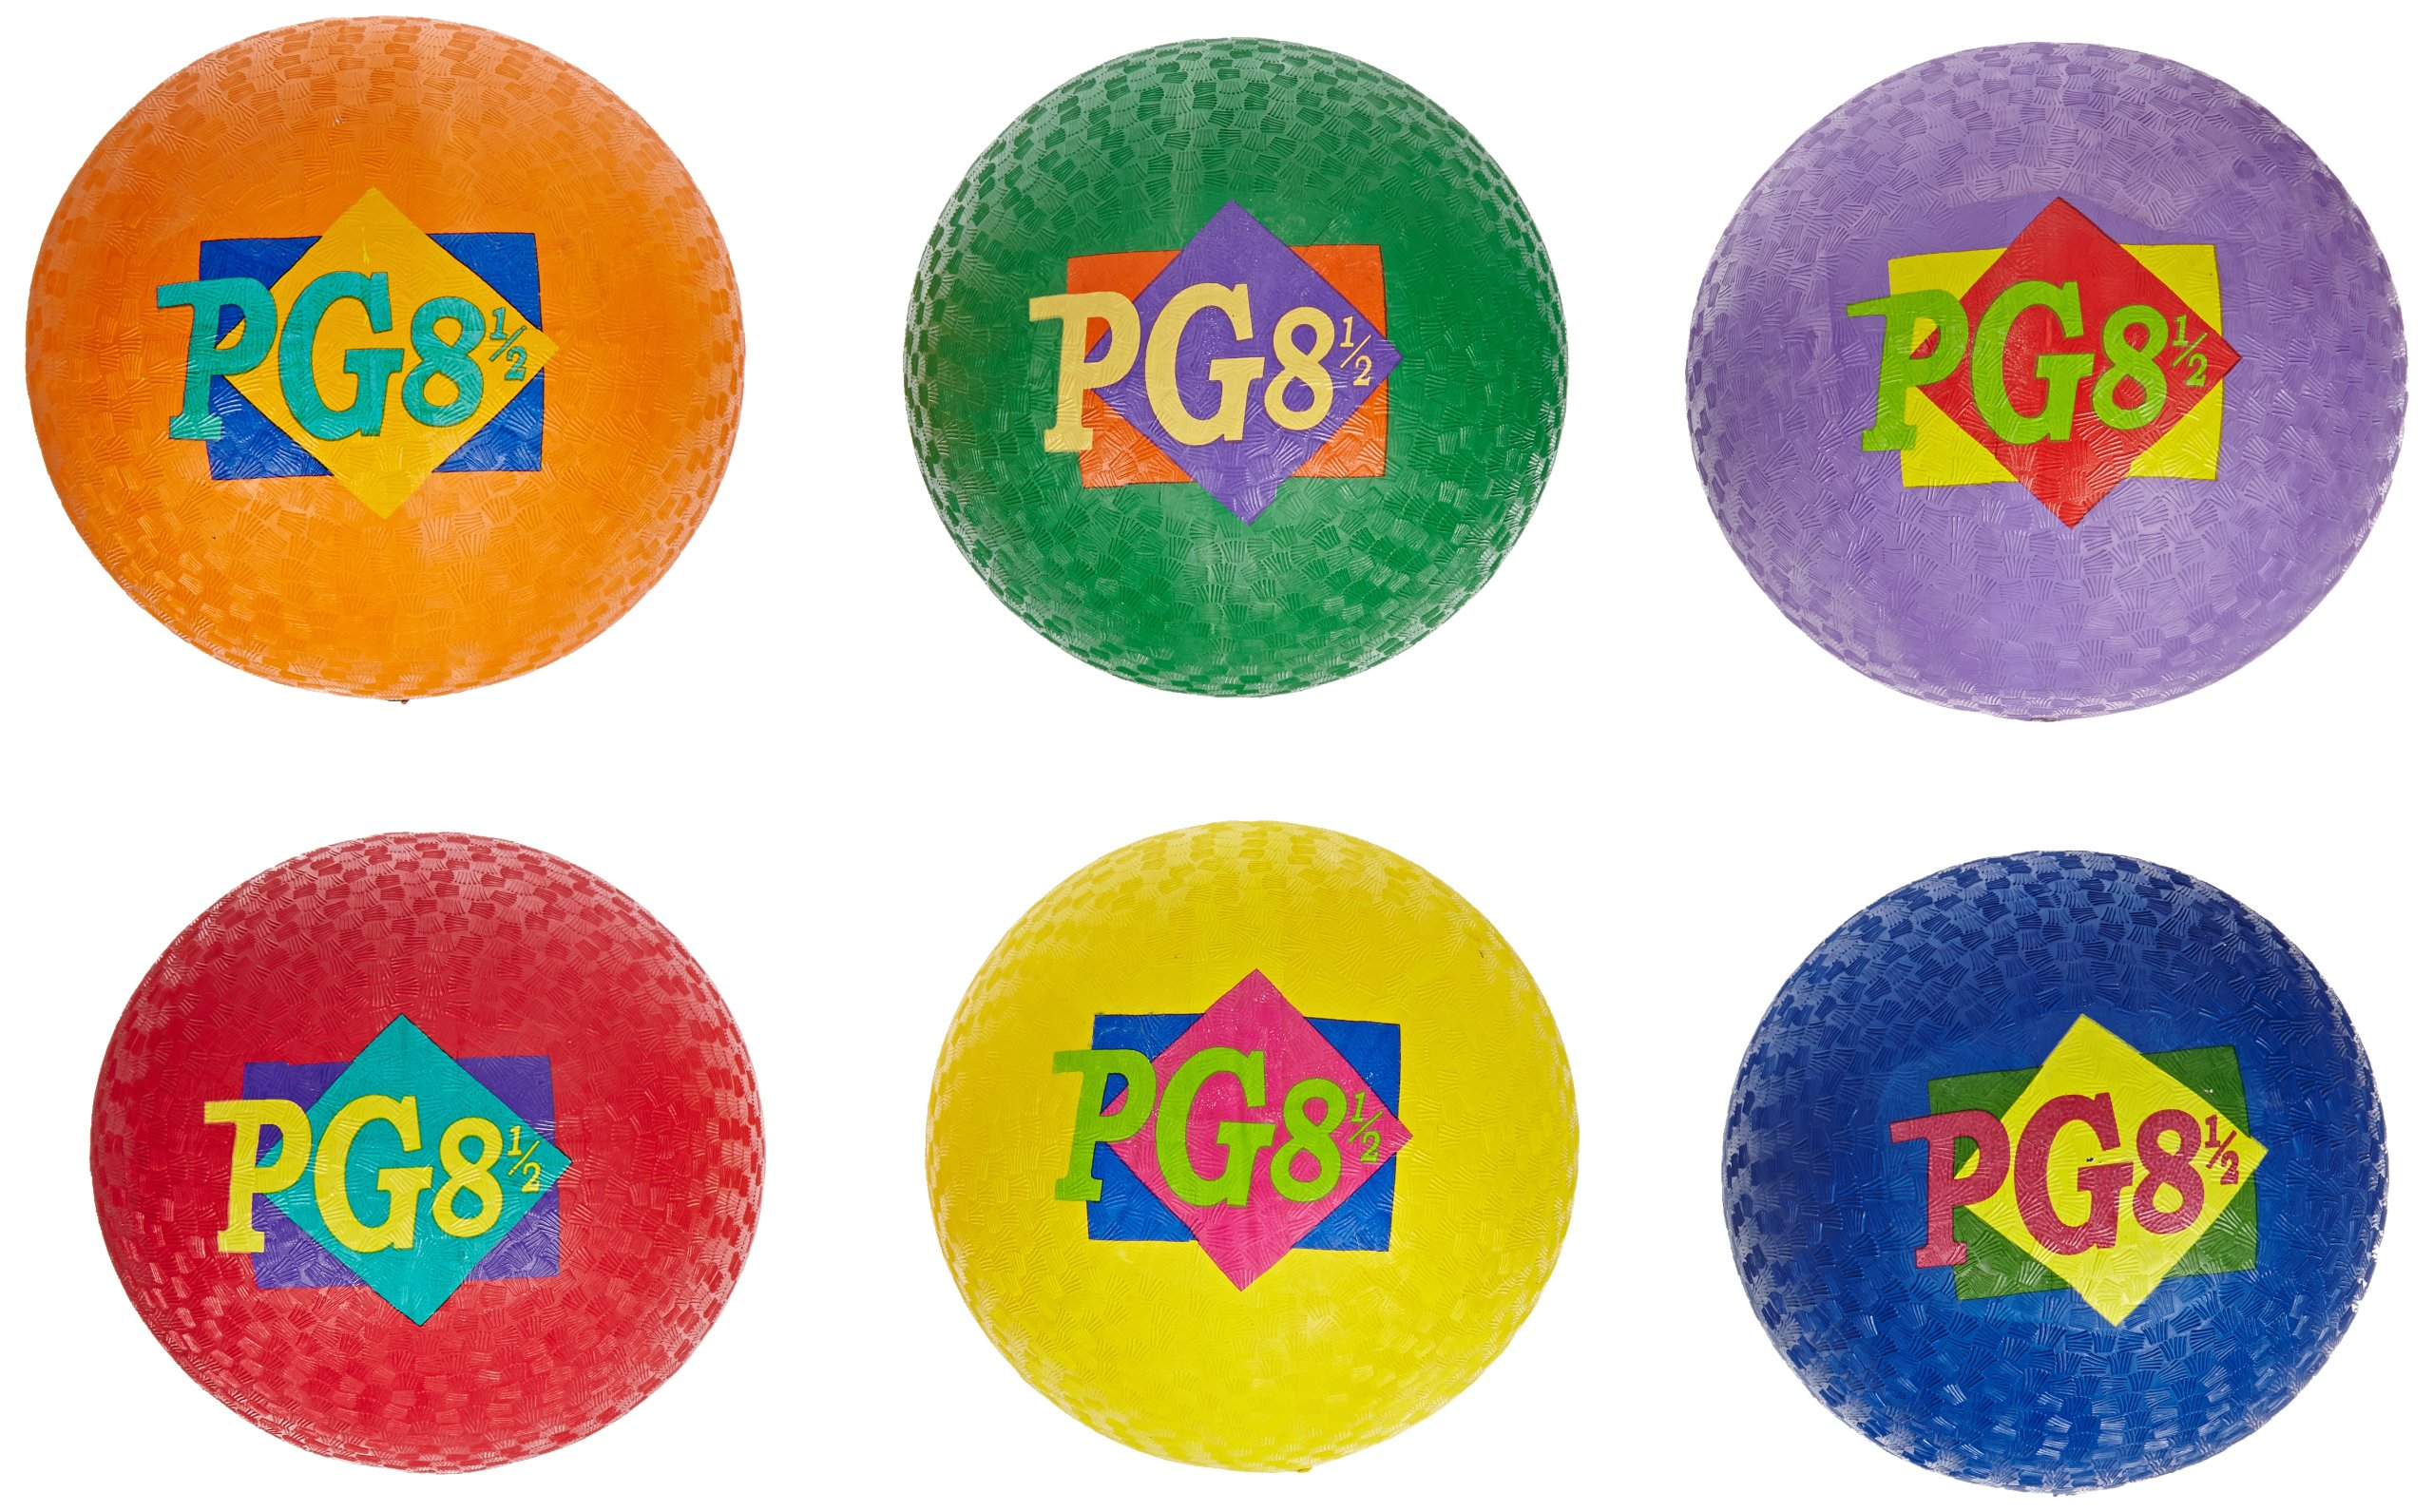 Sportime Playground Rubber Balls, Assorted Colors, Set of 6 by Sportime